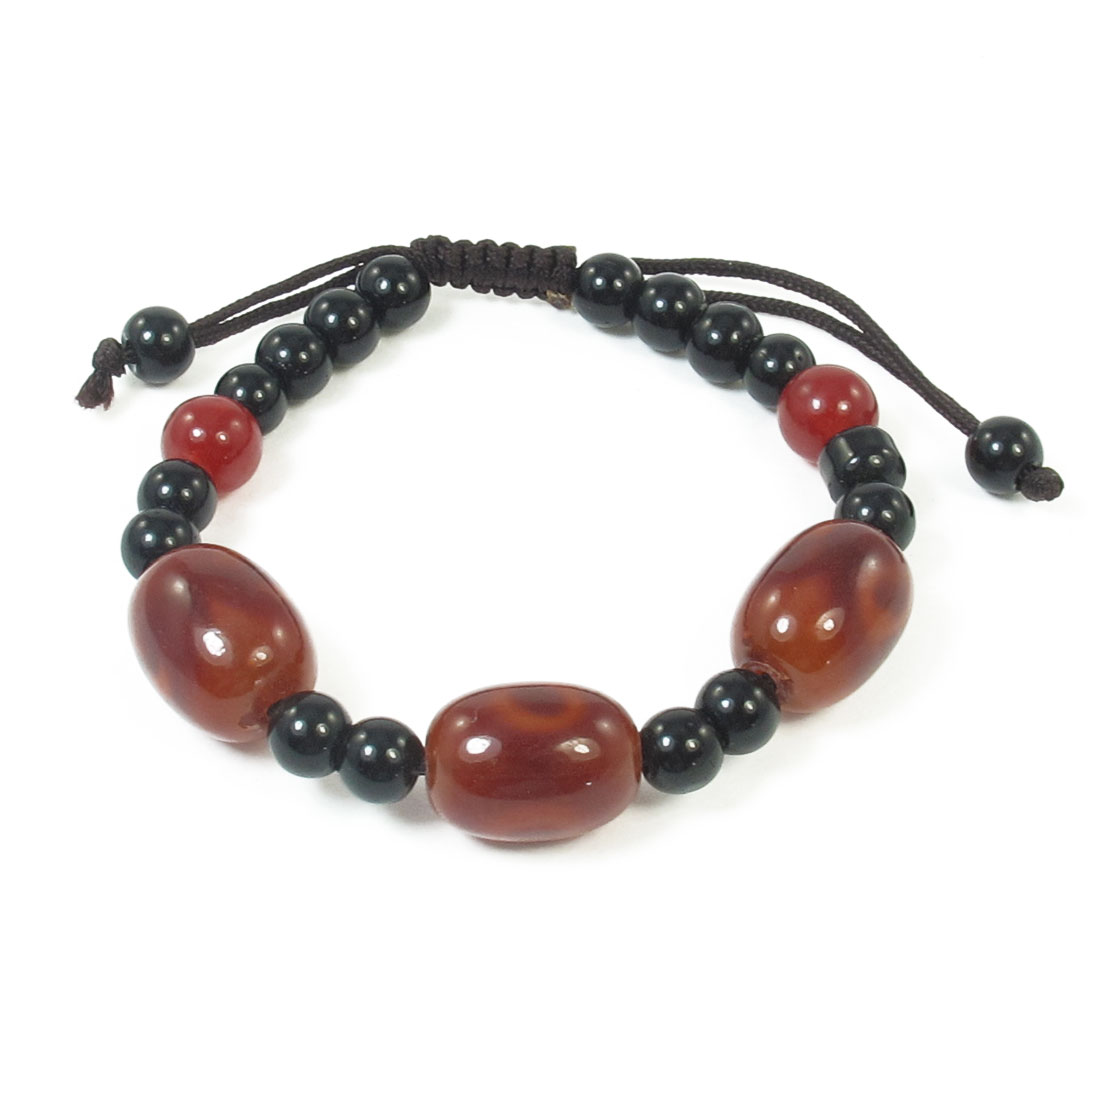 Glass Round Beads Decor Flexible Wrist String Bracelet Black Wine Red for Lady